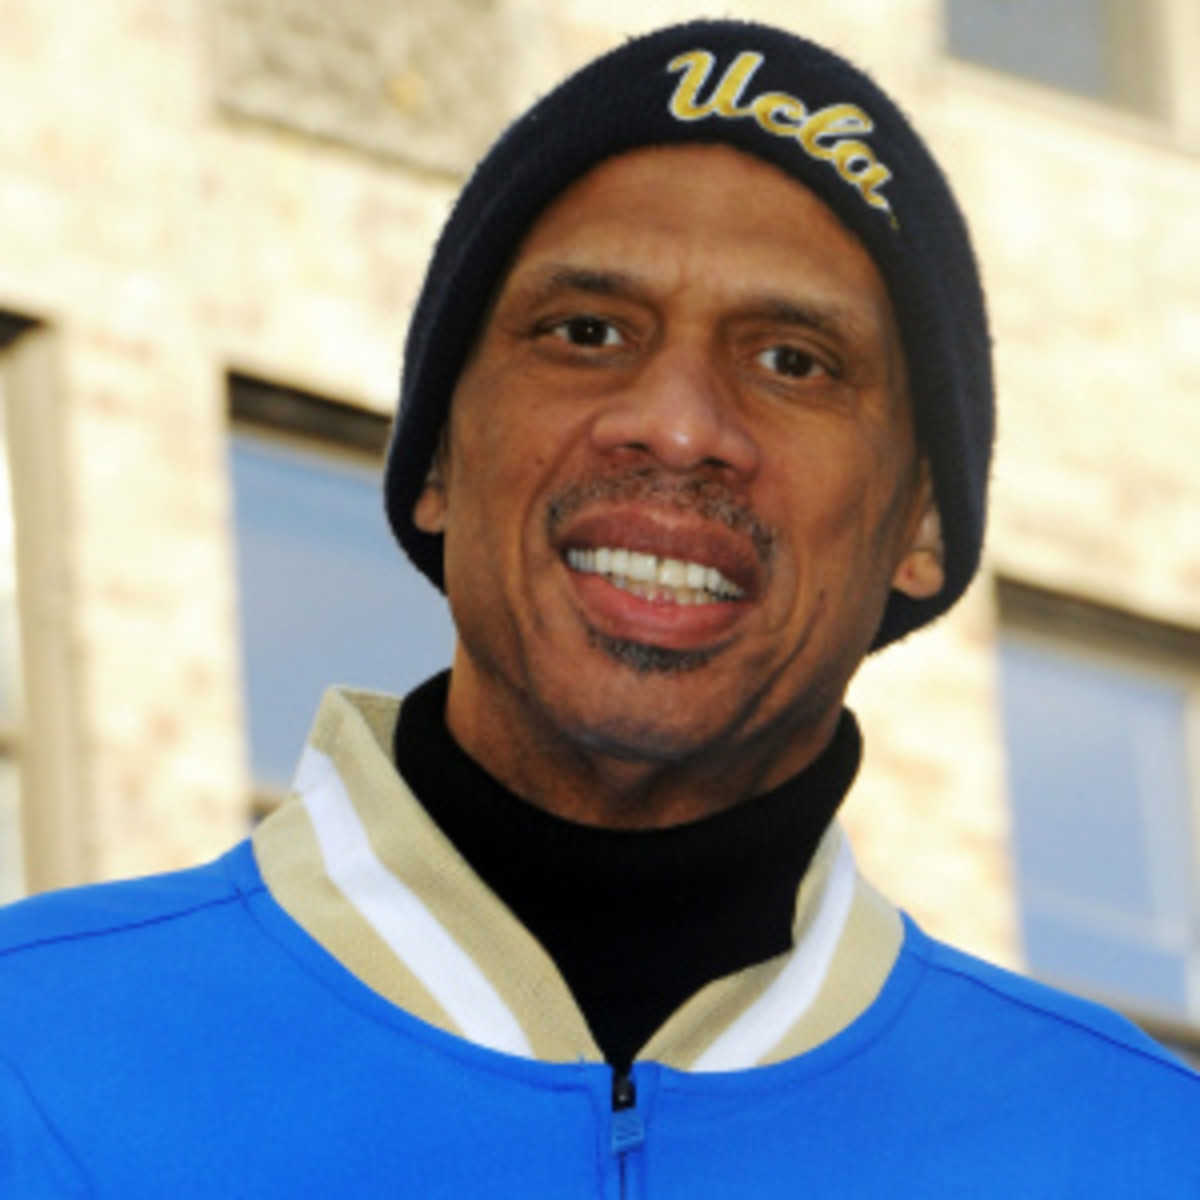 Kareem Abdul-Jabbar has expressed an interest in coaching the UCLA Bruins, his alma mater. (Desiree Navarro/Getty Images)